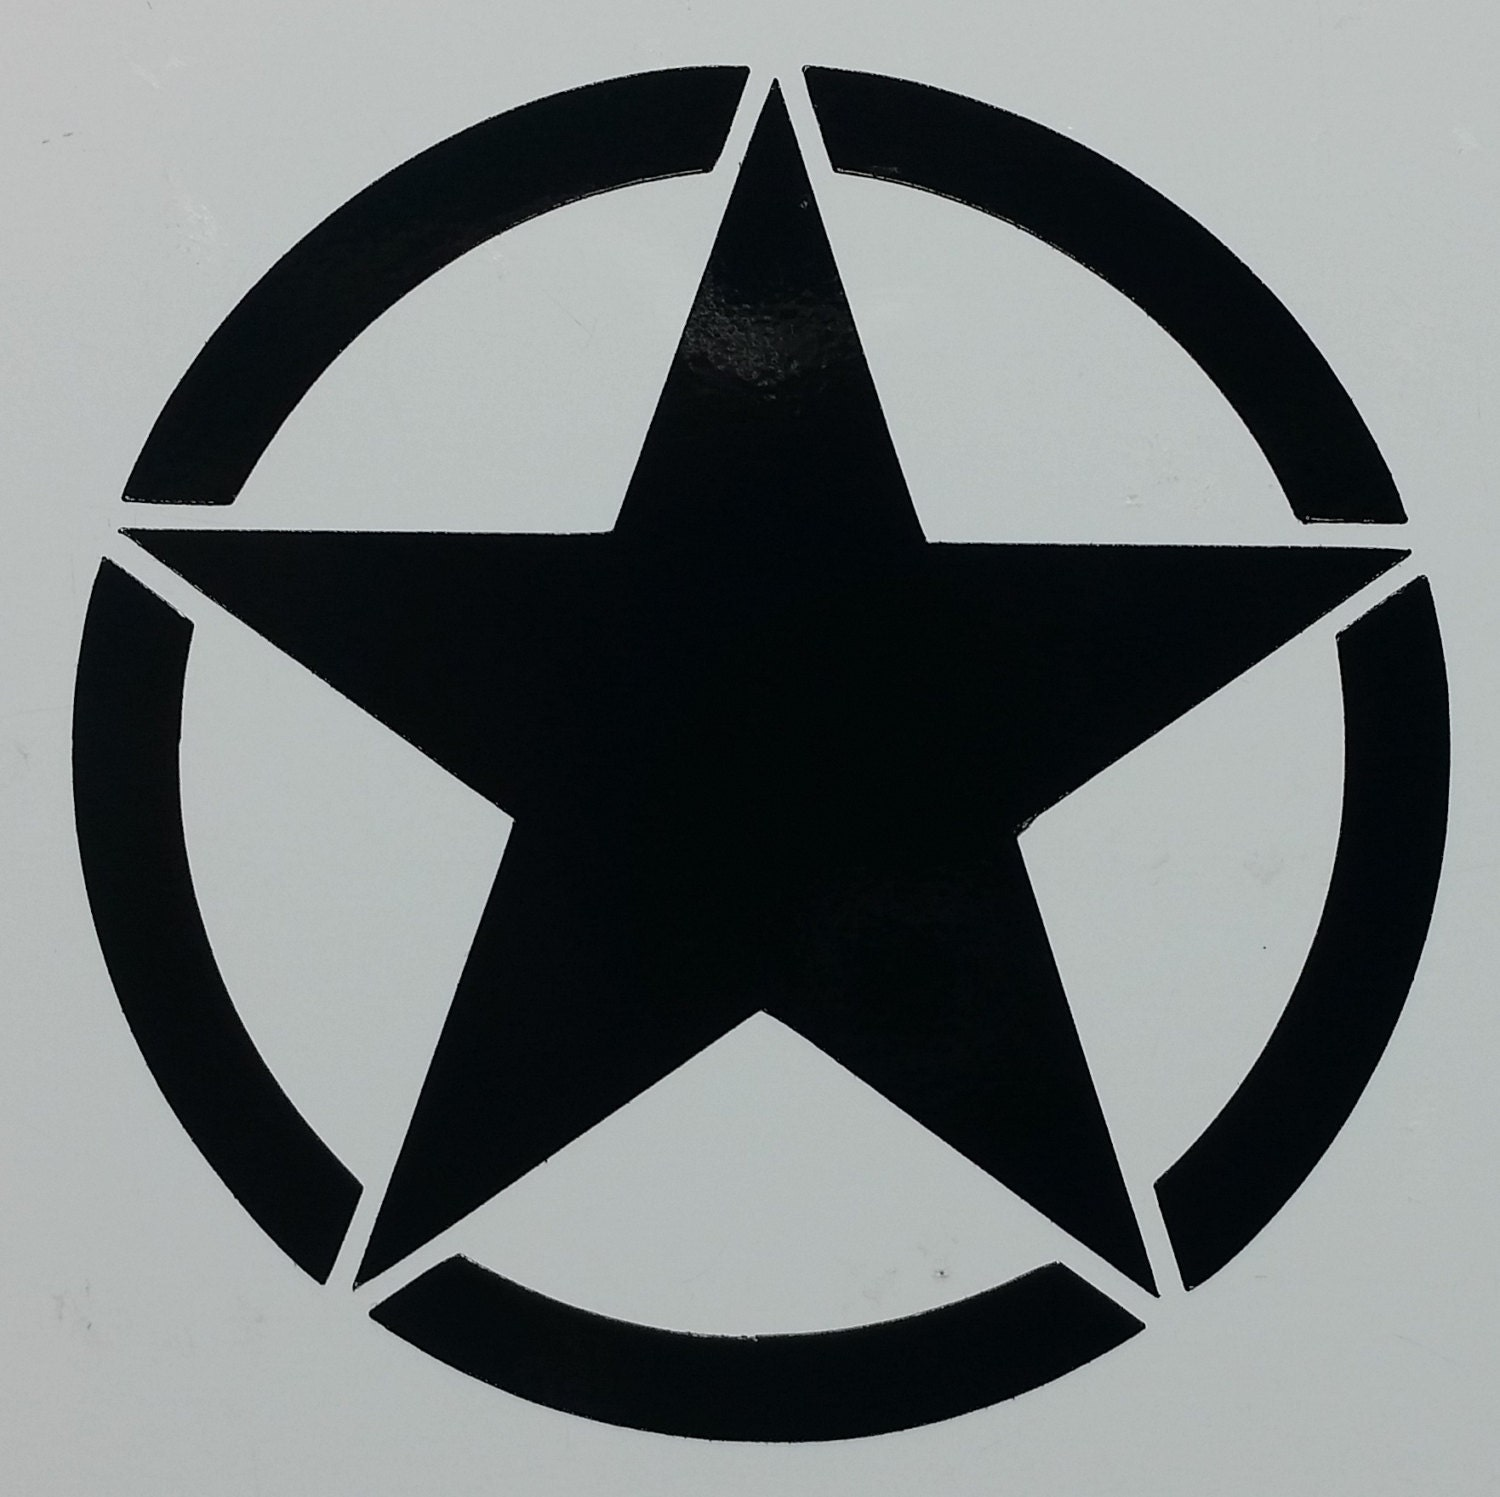 Military Star symbol decal sticker several sizes and colors